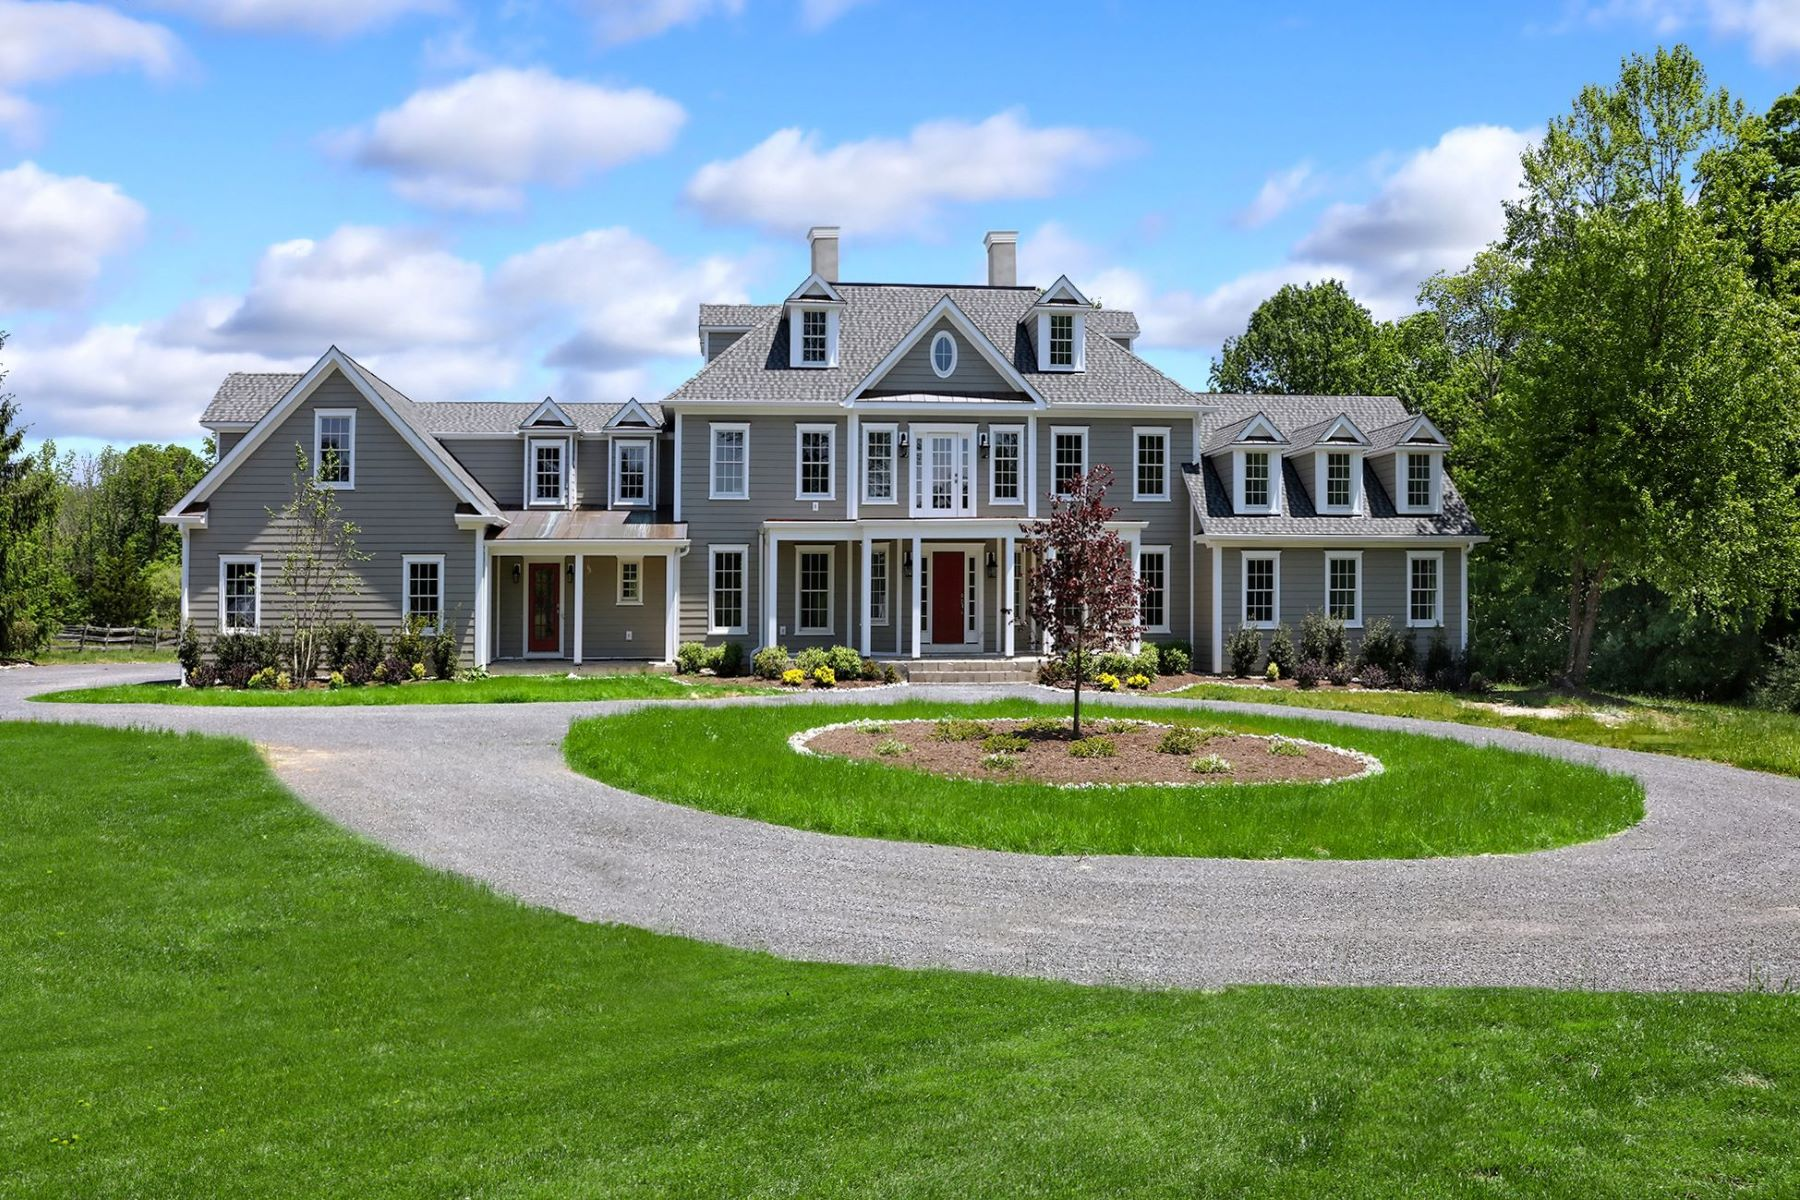 Single Family Homes للـ Sale في Every Amenity in this Spectacular Estate-Style Home 114 Federal Twist Road, Stockton, New Jersey 08559 United States